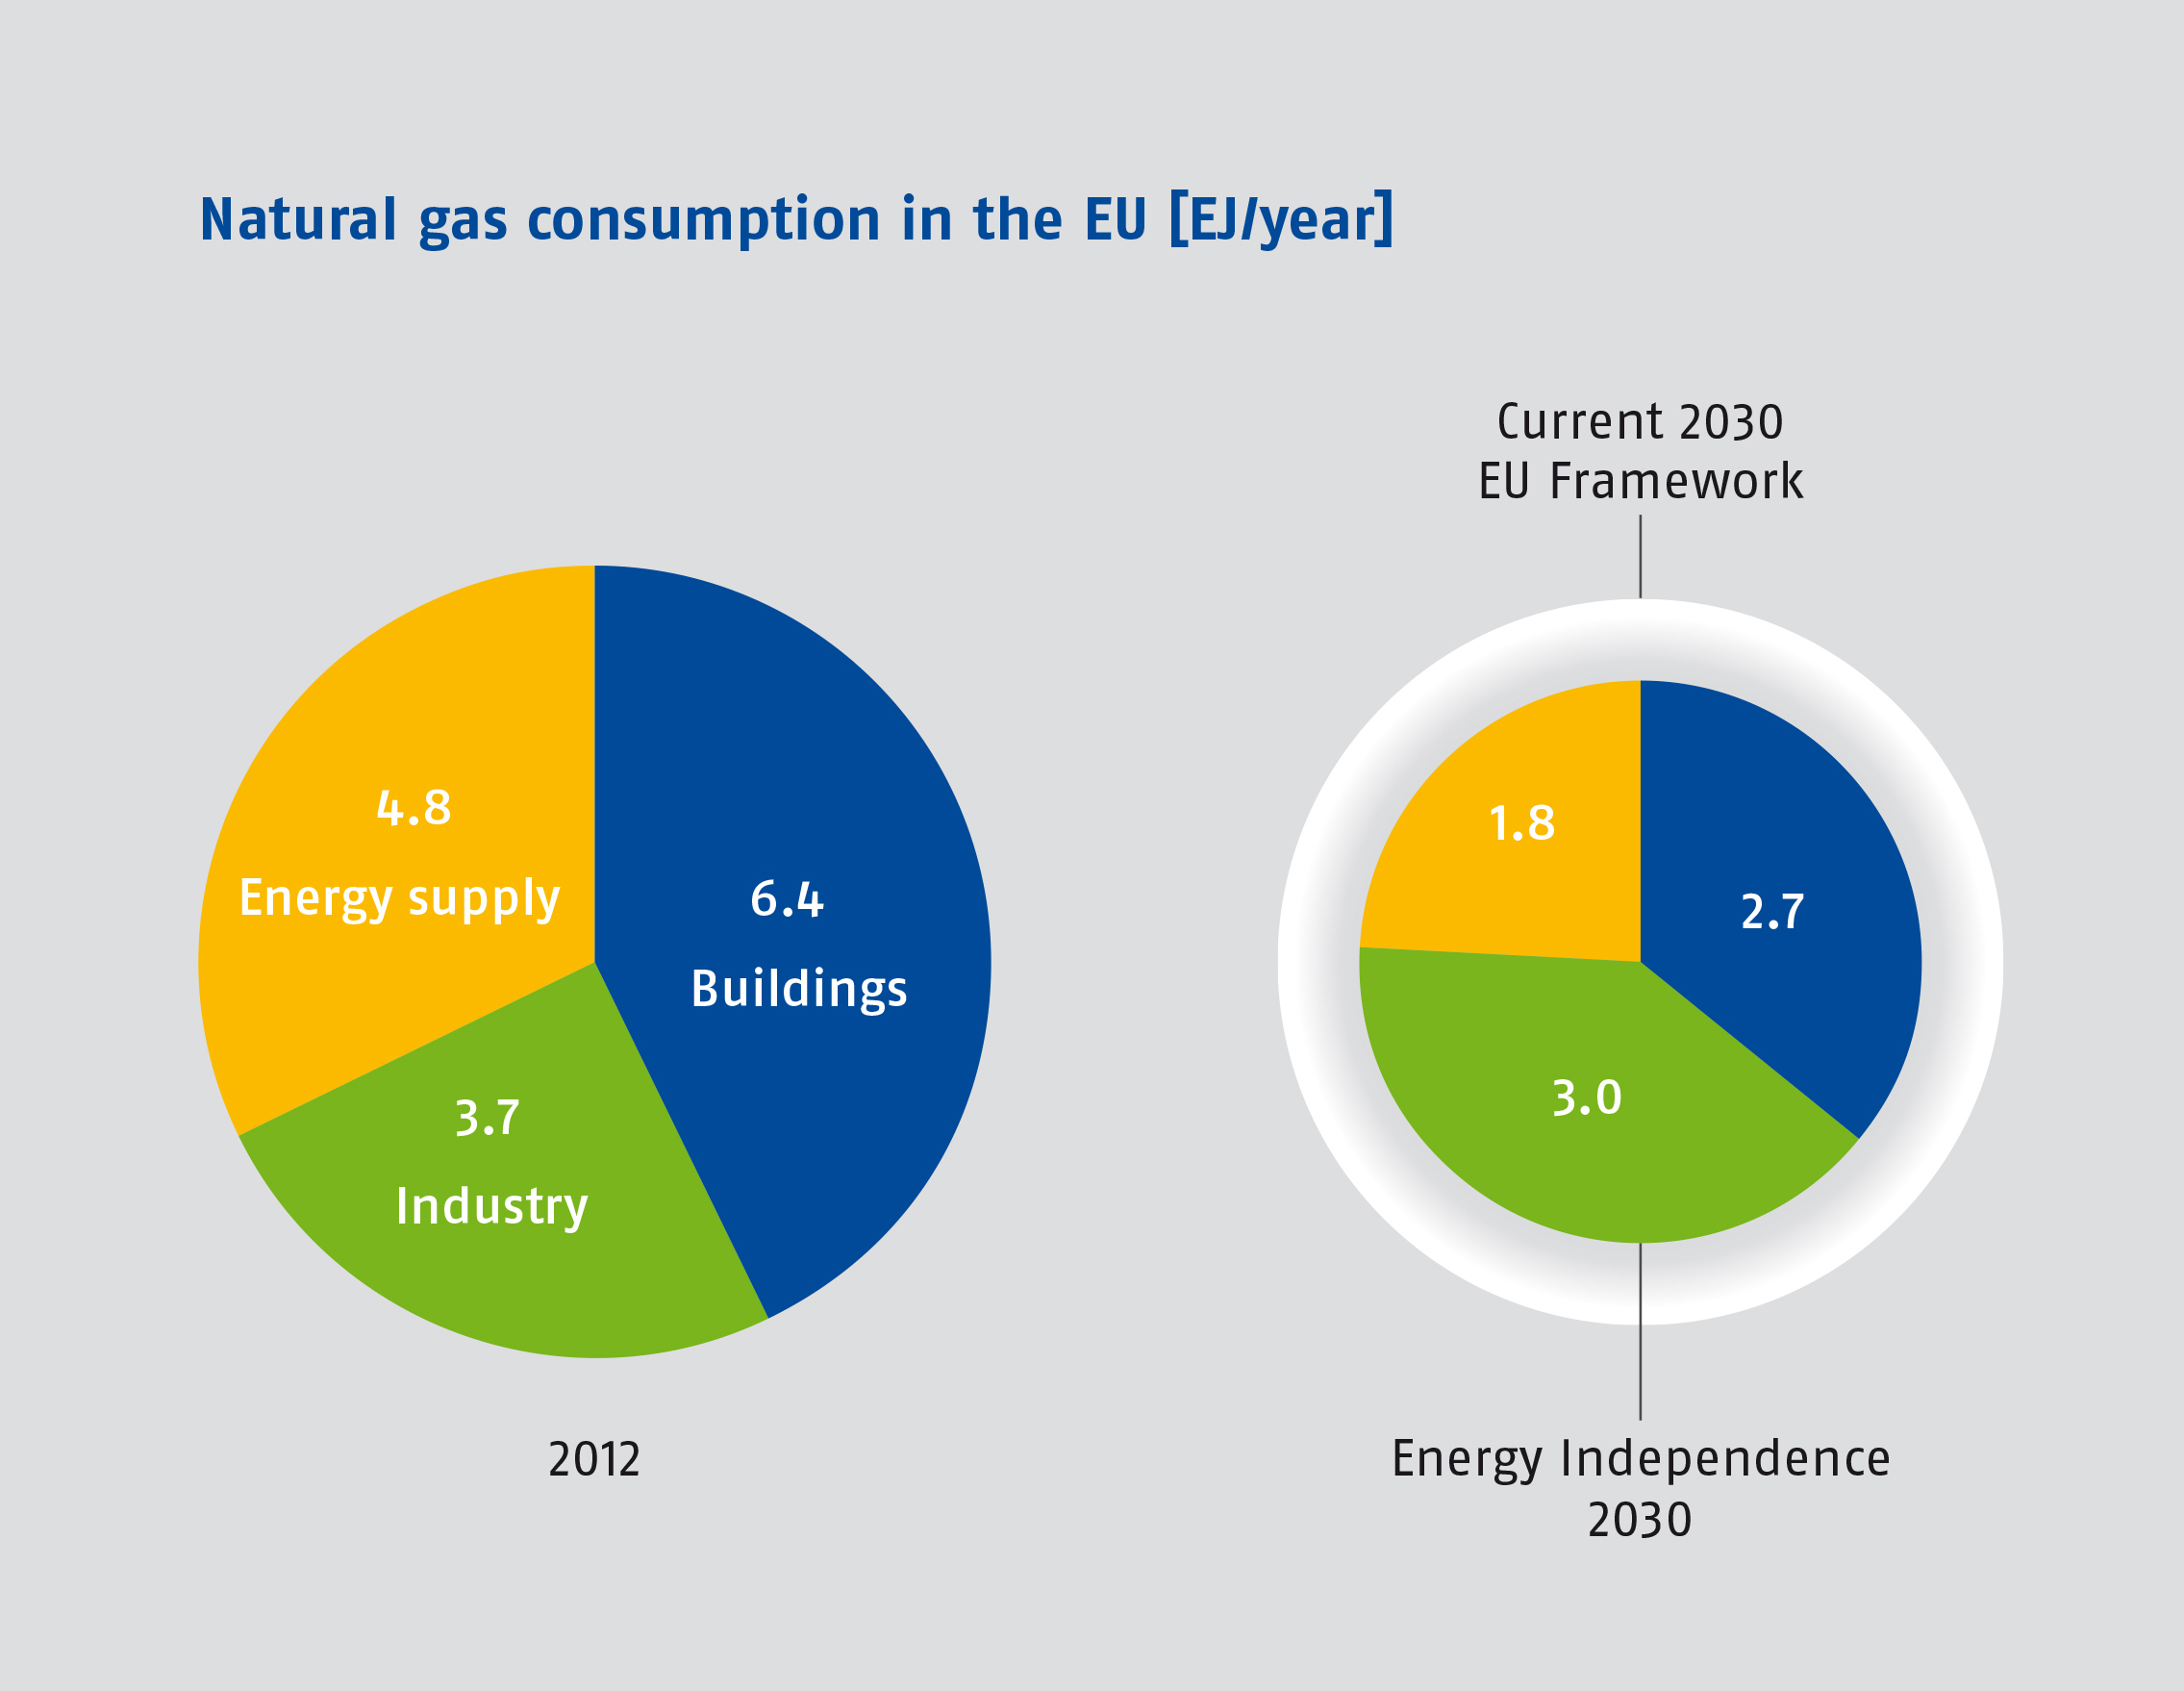 "<p>Notes and Sources: Figure shows natural gas consumption for energy use in the EU by sector in 2012 (Eurostat 2014), and the EU 2030 Framework for Climate and Energy Policies scenario (European Commission, 2014) and this study's ""Energy Independence"" scenario for 2030 (Ecofys, 2014).</p>"